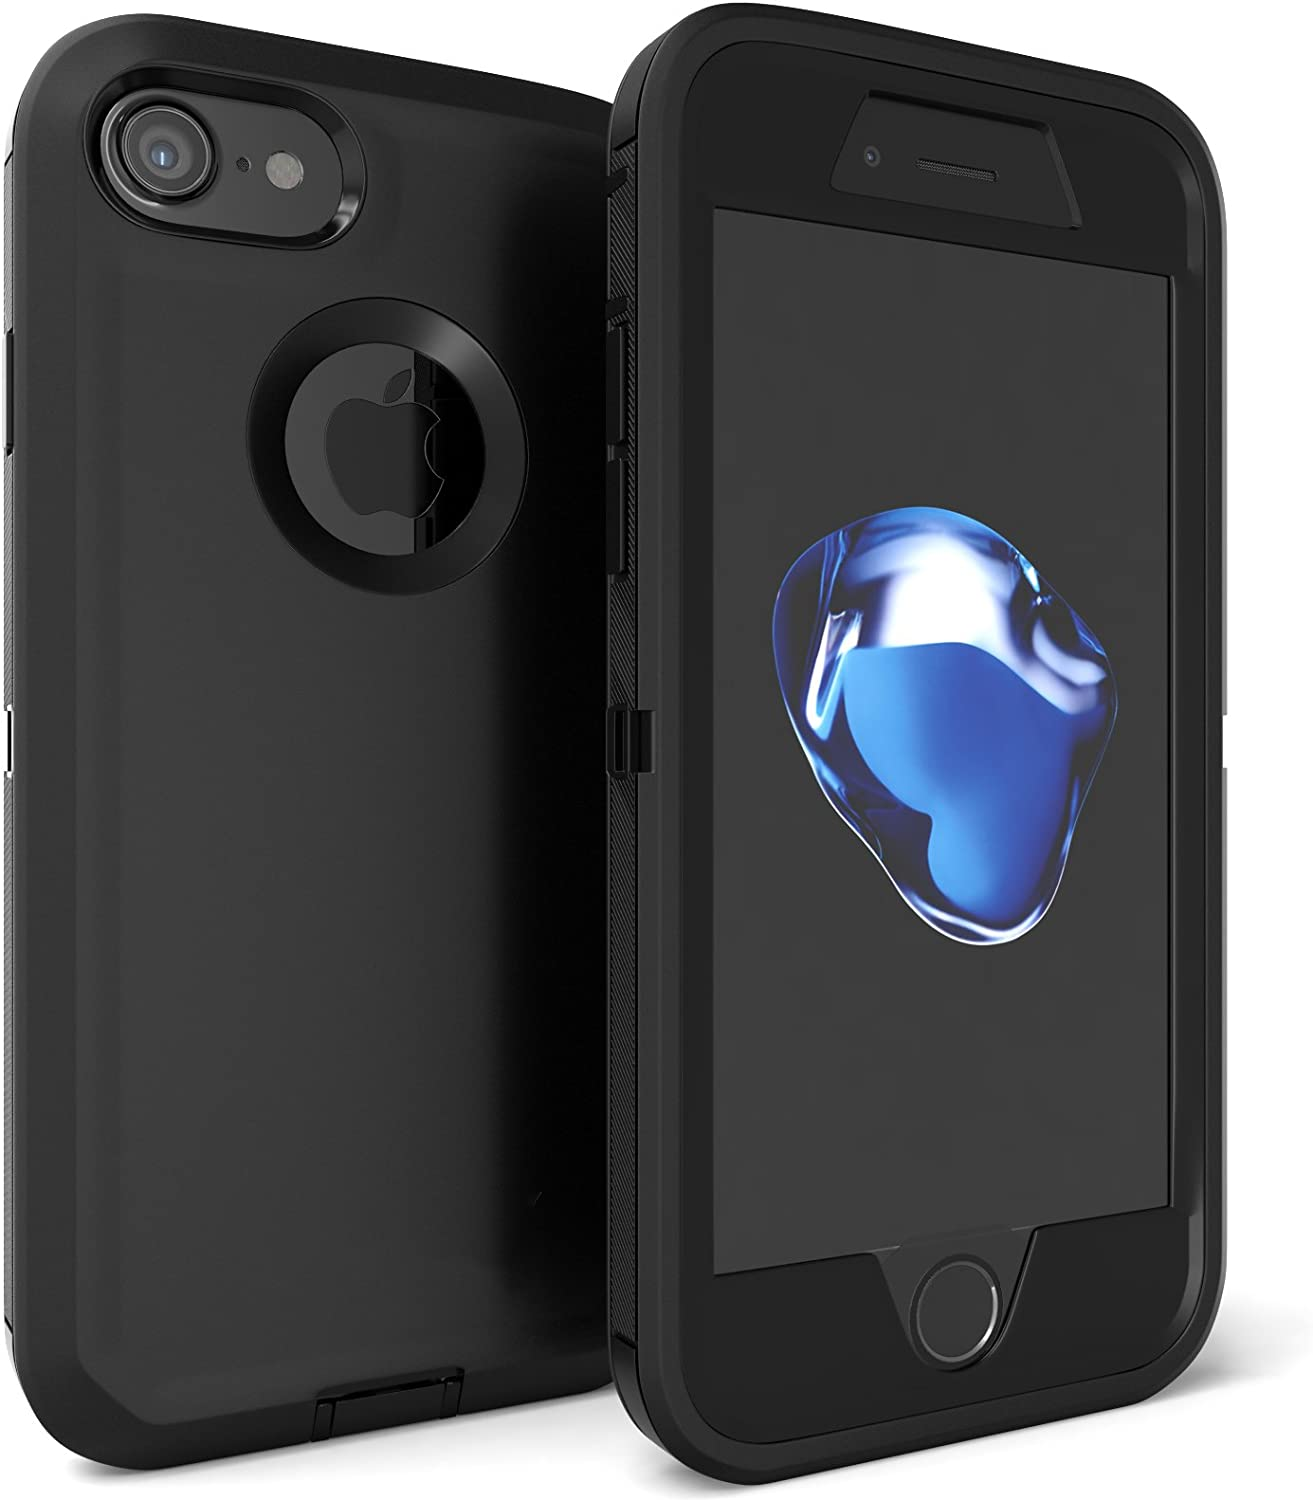 iPhone 7 Case, Viero Defender Case Heavy Duty Rugged Impact Resistant Full Body Protective Armor Military Grade Protection Belt Clip Built-in Screen Protector Case Cover for iPhone 7 - Black